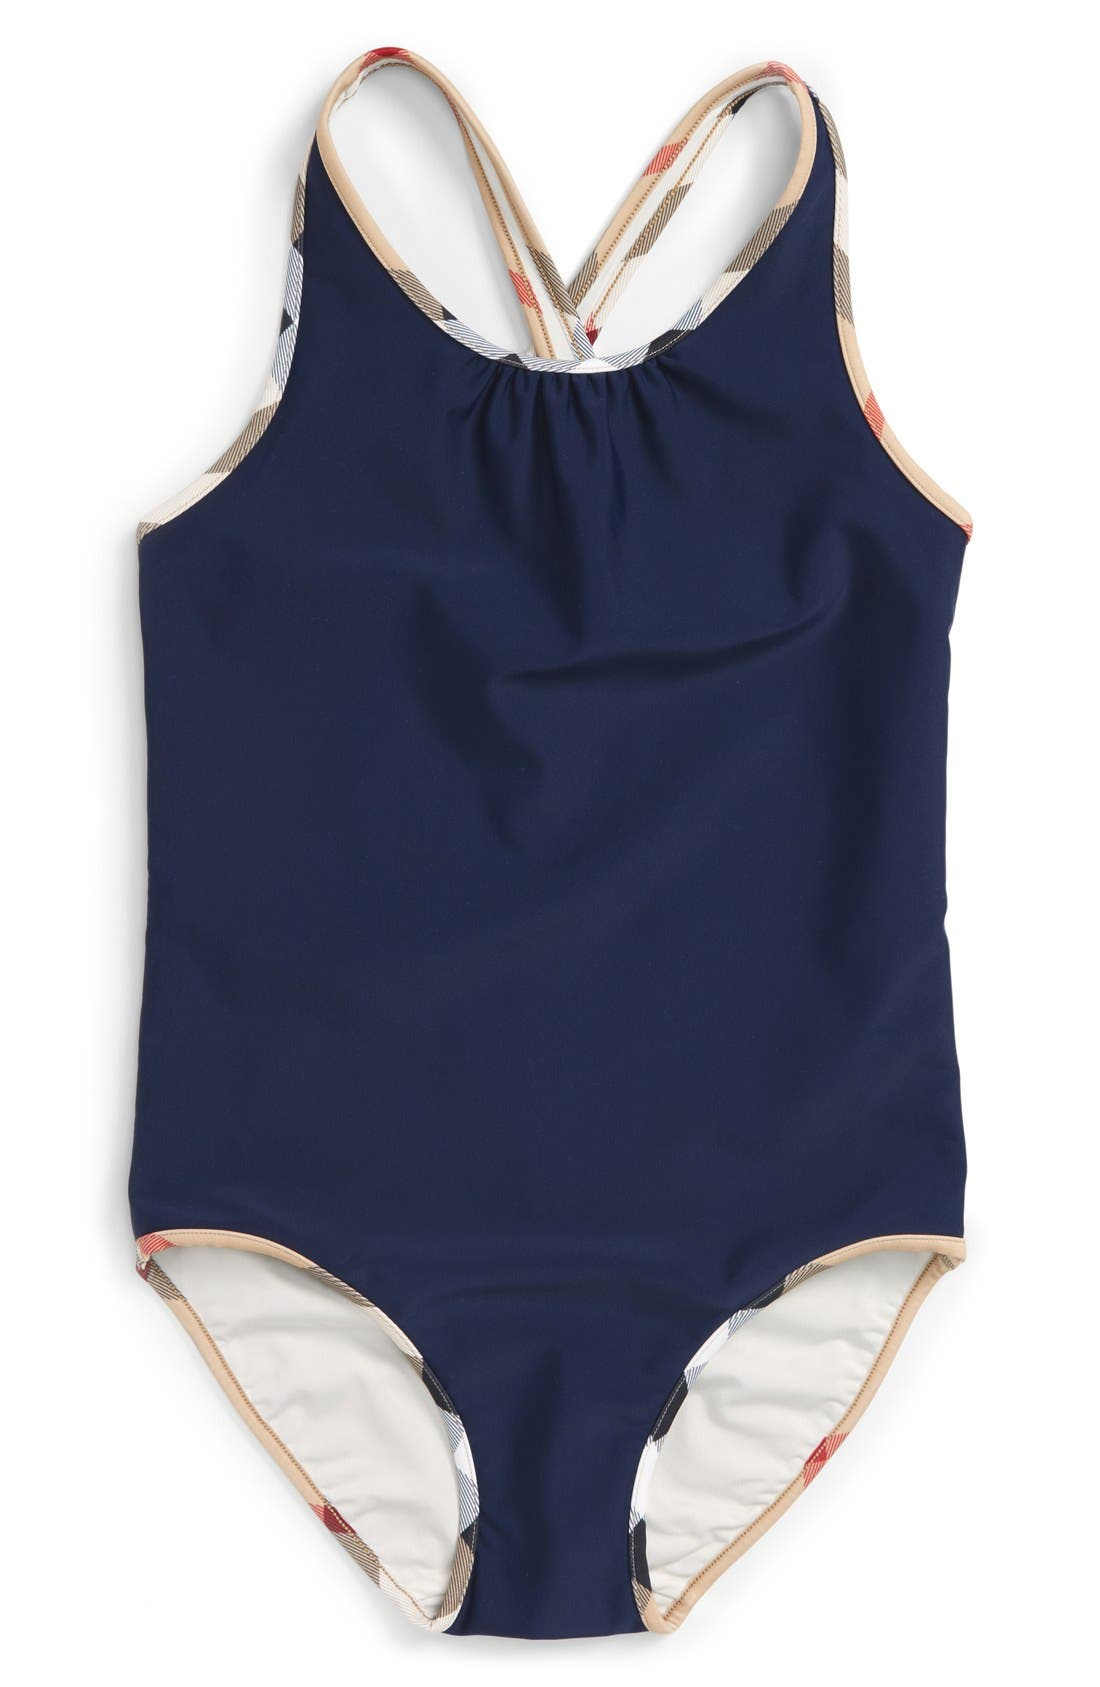 Alternate Image 1 Selected - Burberry 'Beadnell' One-Piece Swimsuit (Little Girls & Big Girls)